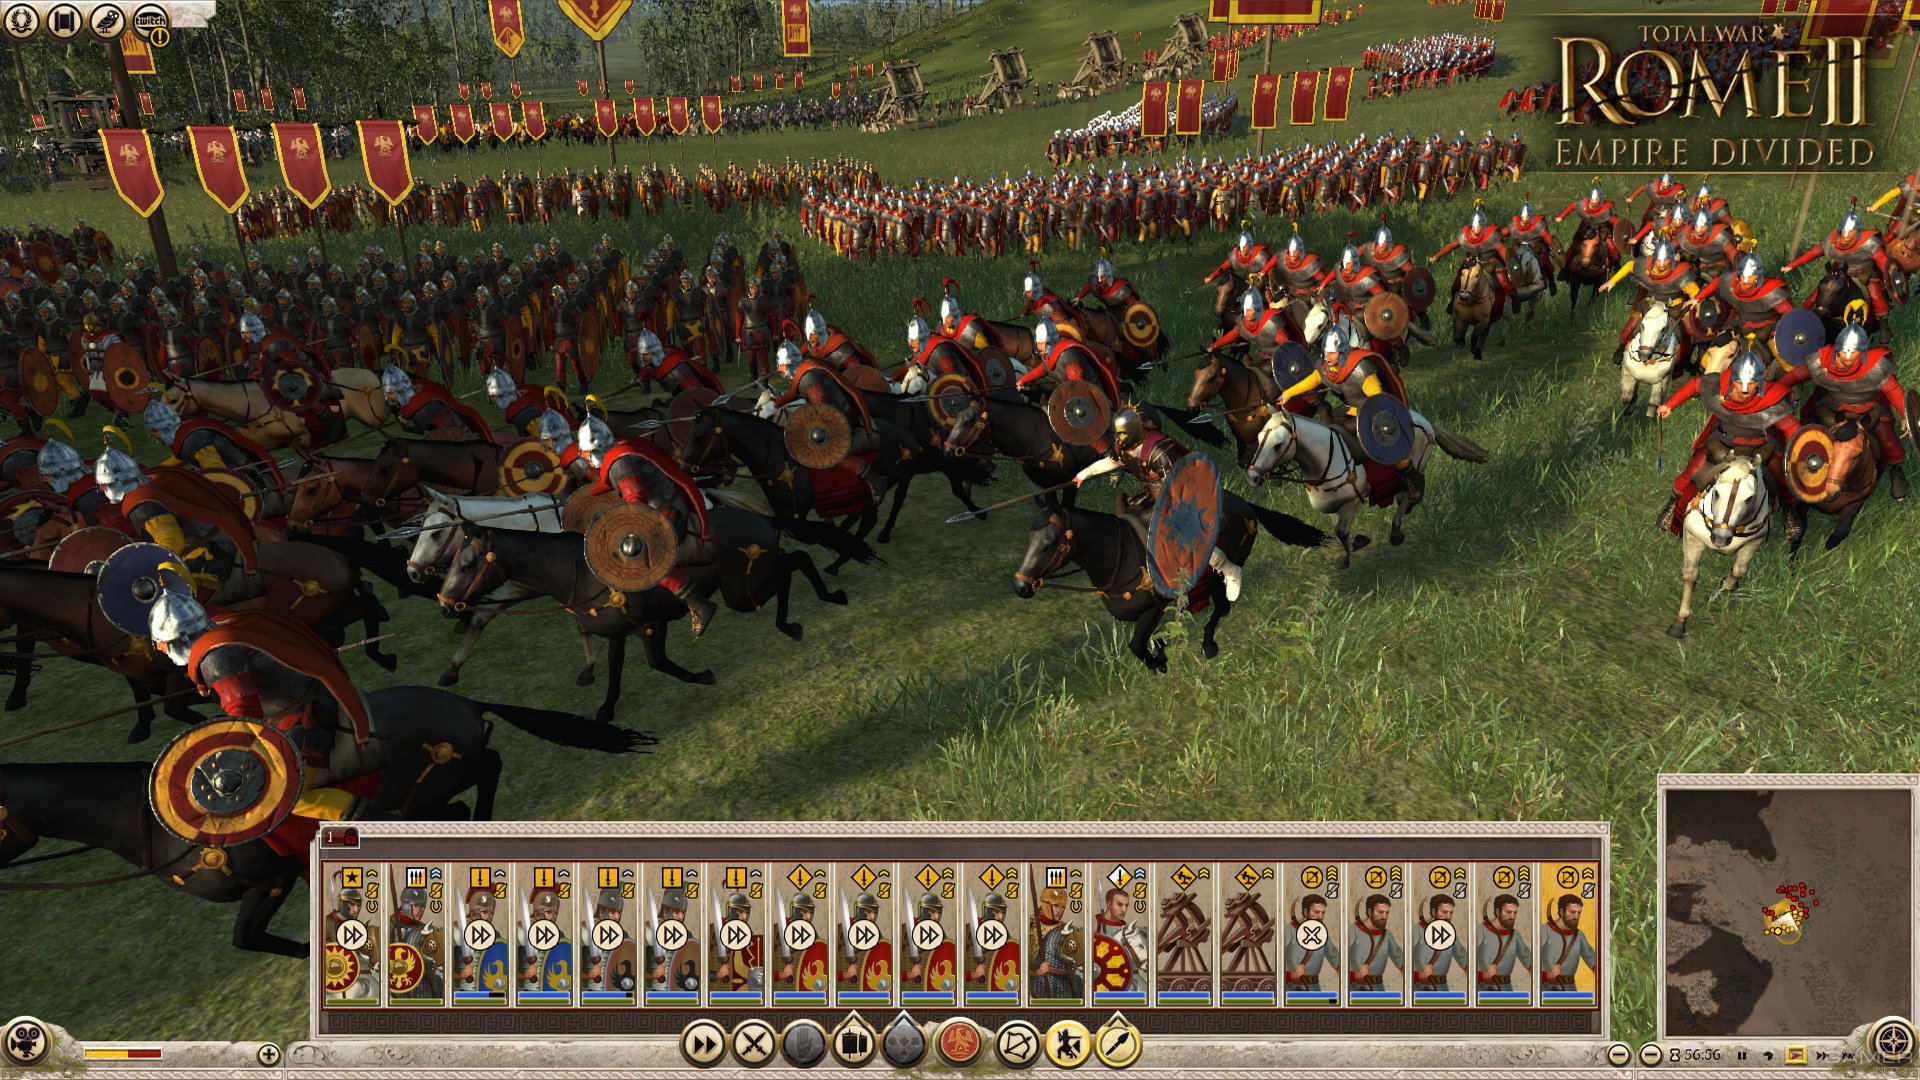 Анонсировано DLC Empire Divided для Total War: ROME II